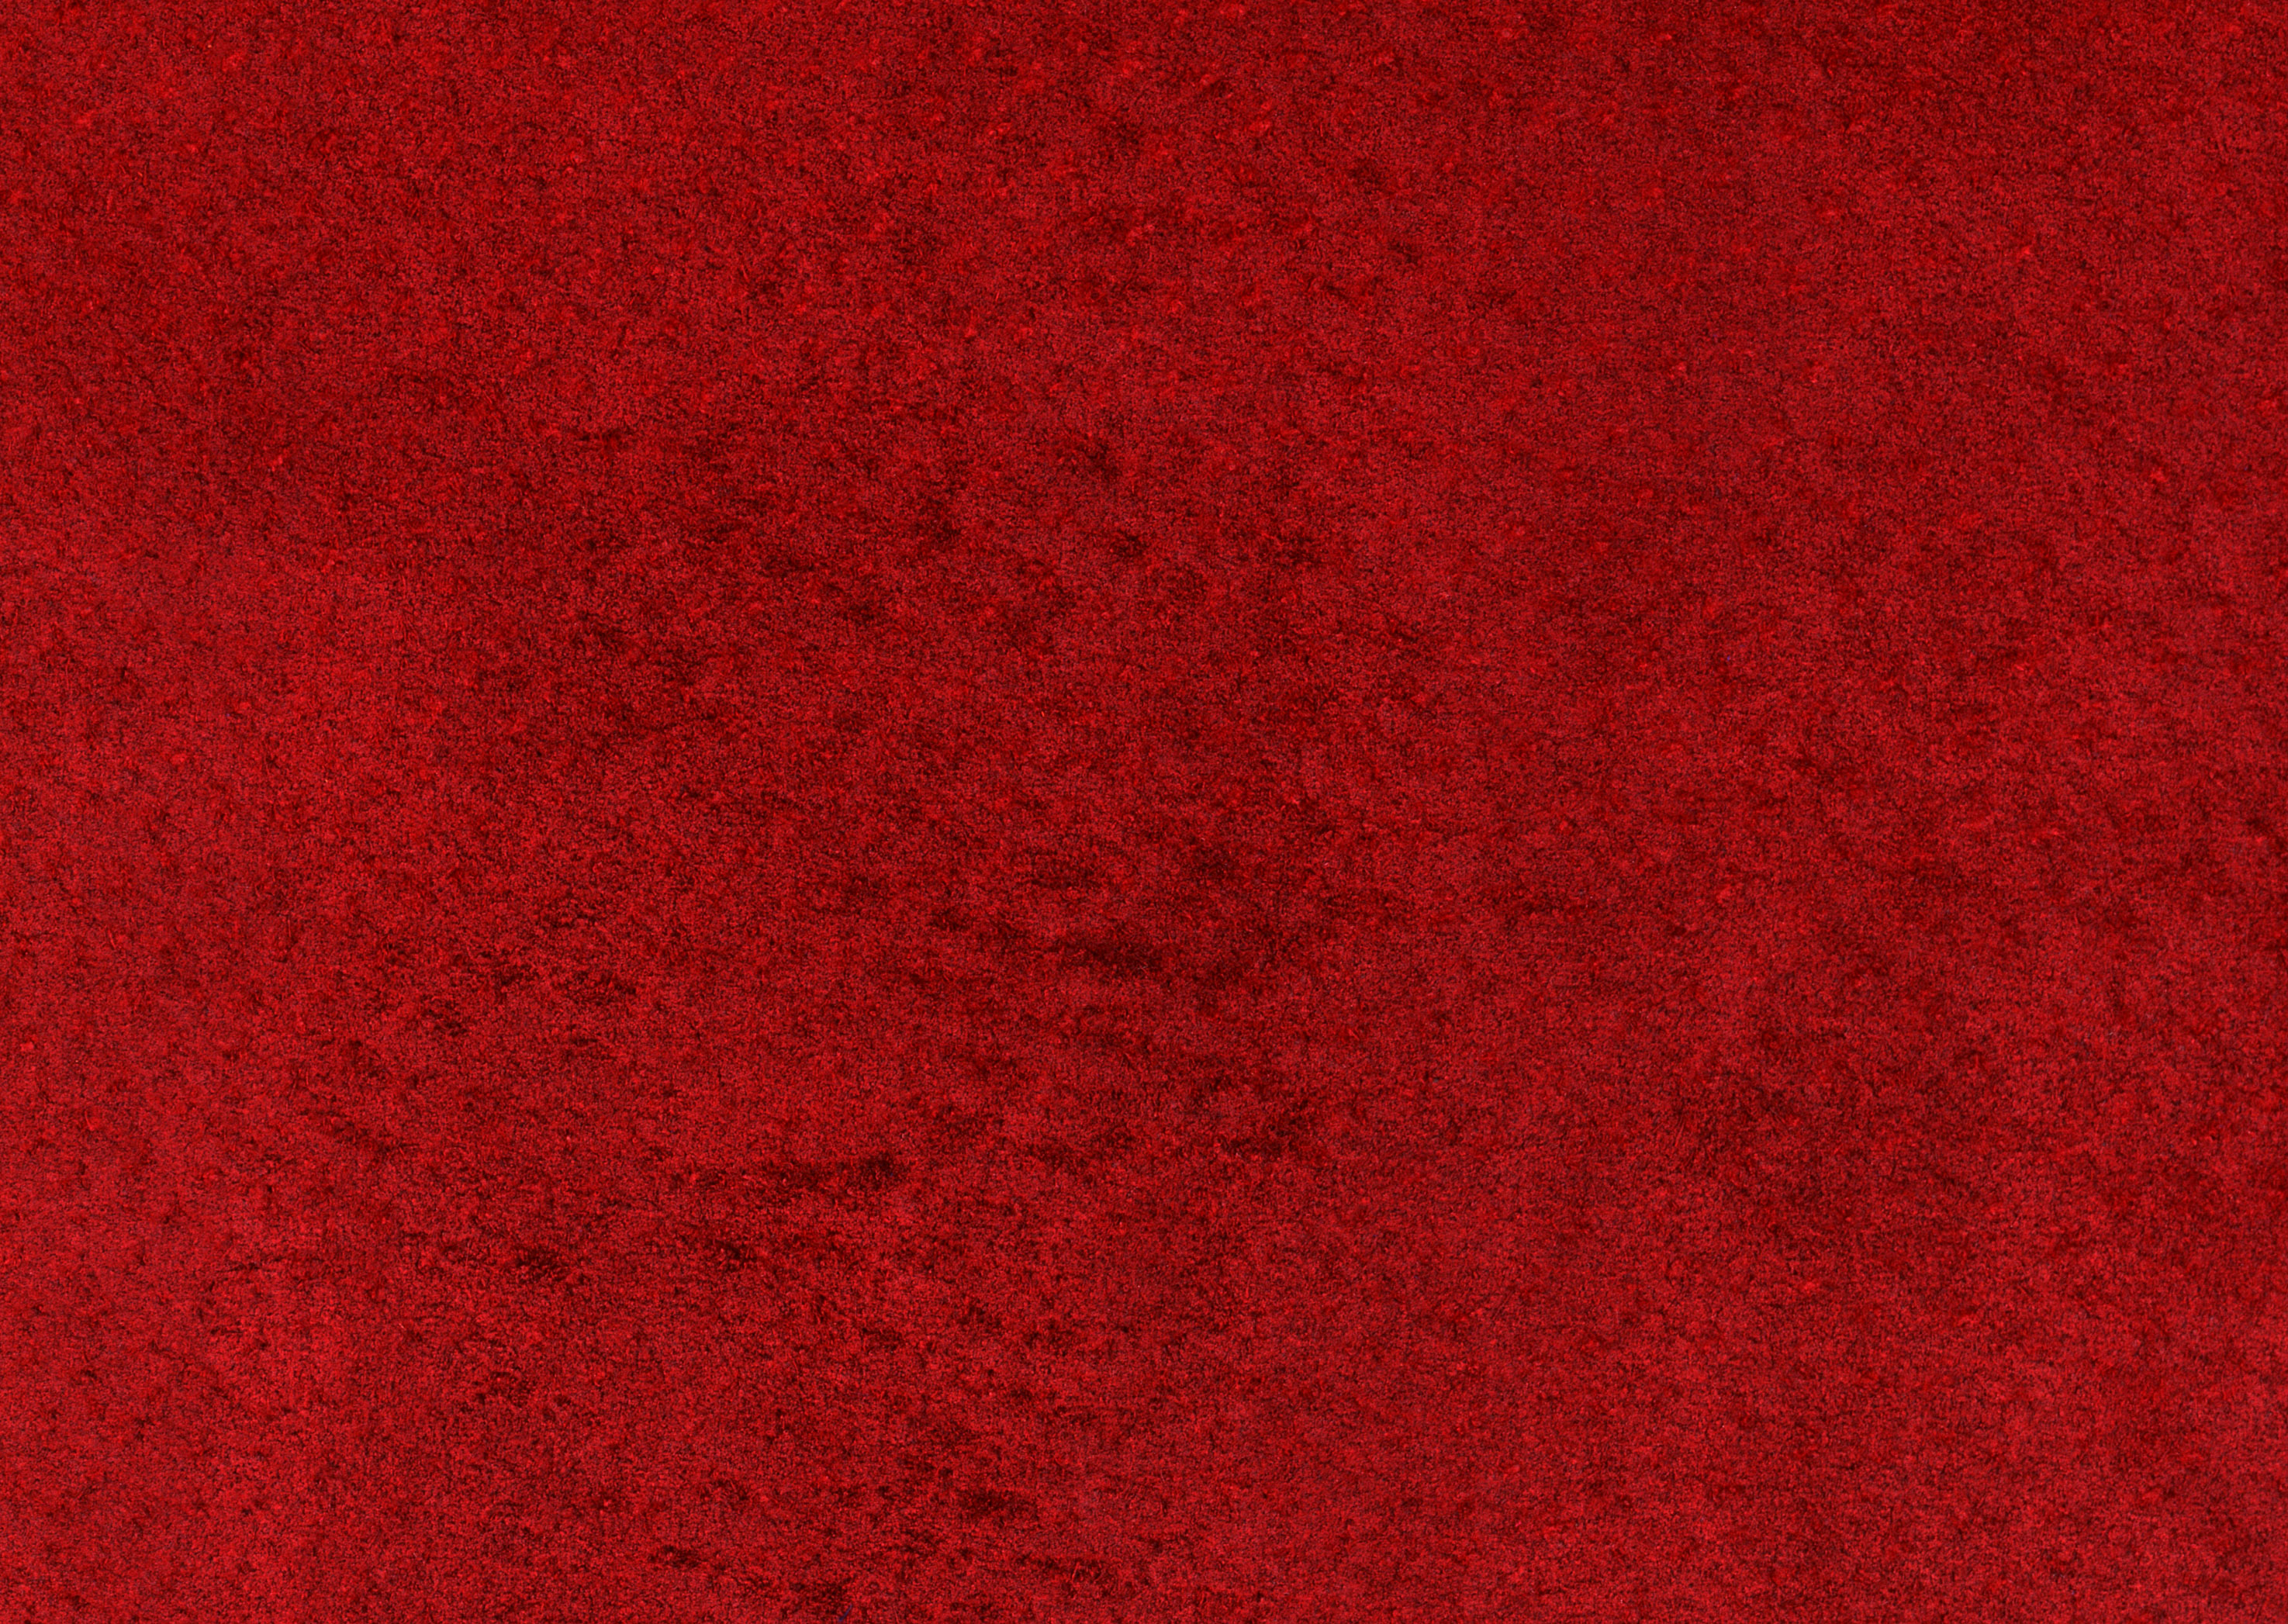 Red leather big textures background image free picture for Texture background free download